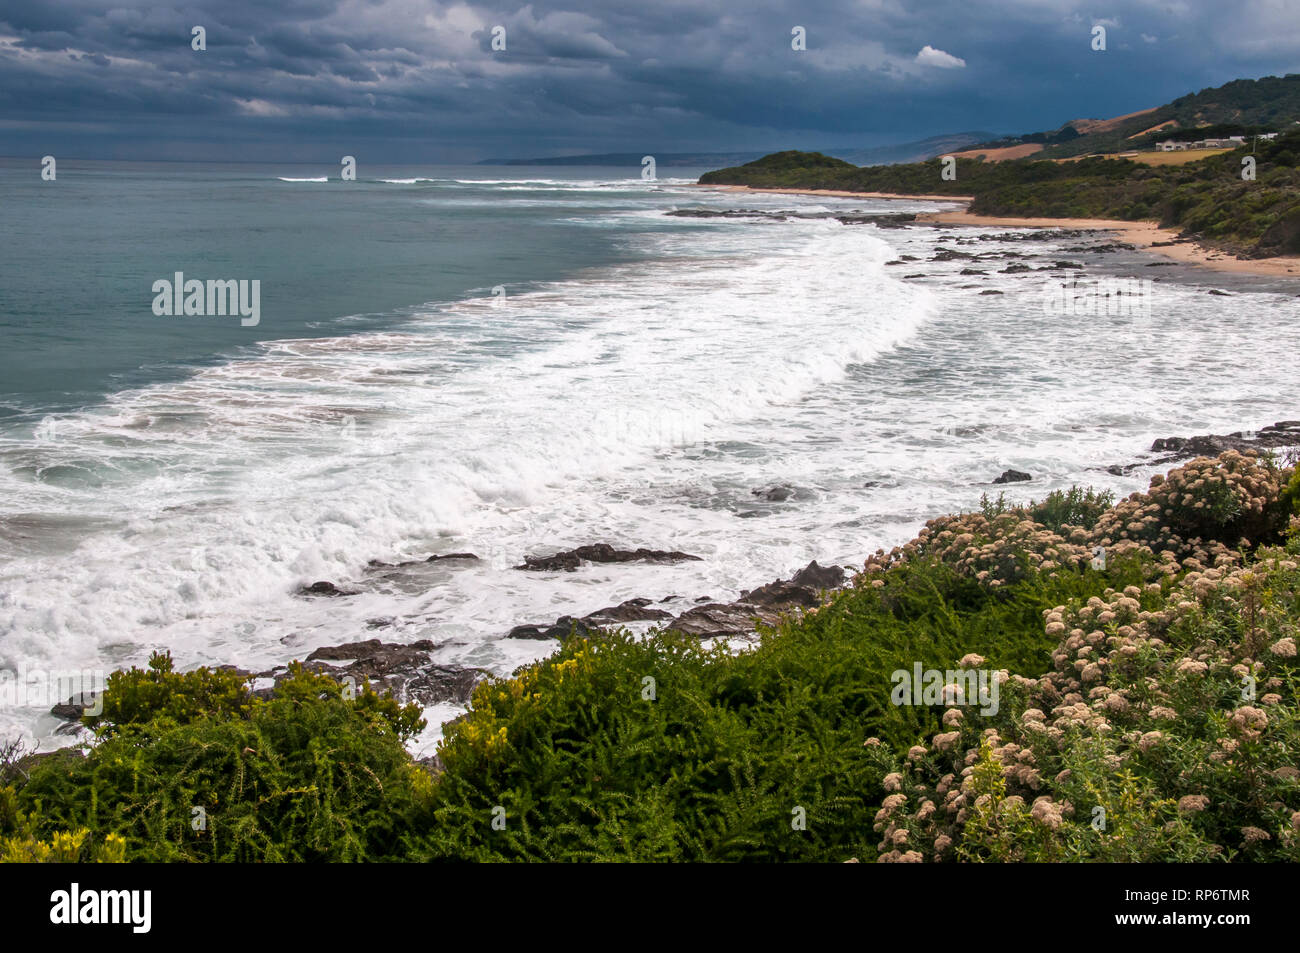 Looking west from Cape Patton towards Apollo Bay along the Great Ocean Road, Victoria, Australia Stock Photo